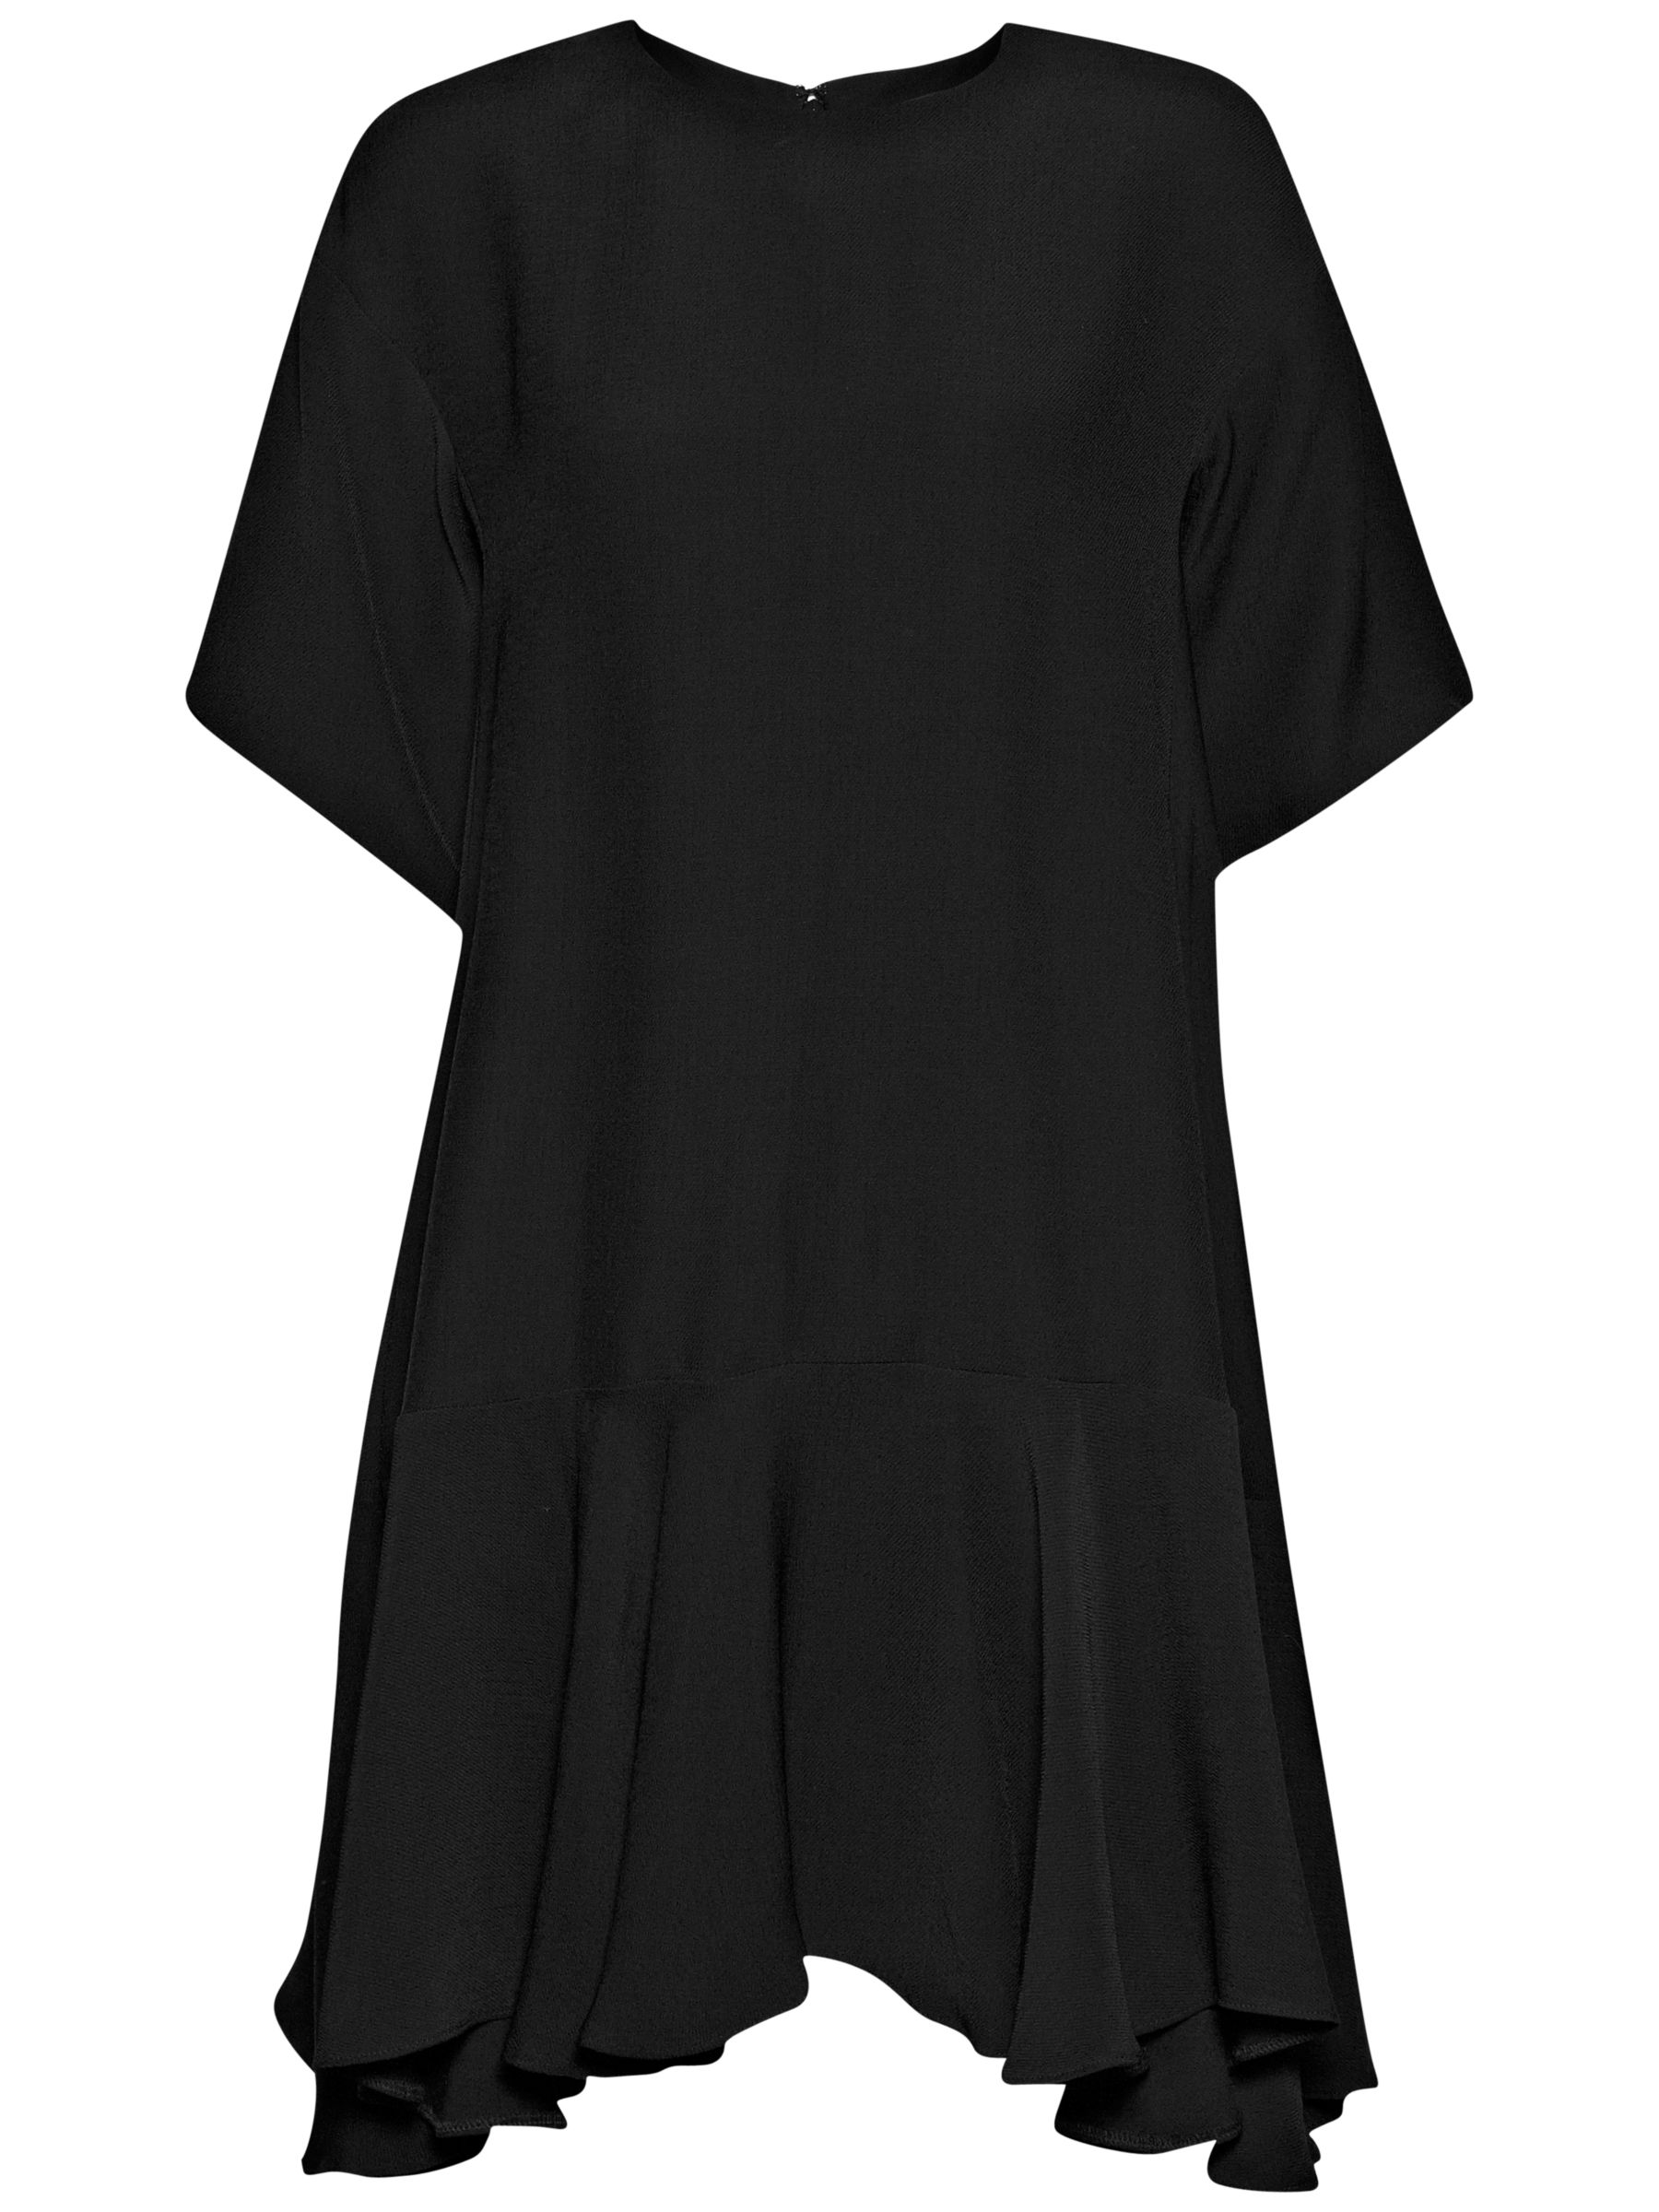 french connection downtown crepe frill hem dress black, french, connection, downtown, crepe, frill, hem, dress, black, french connection, 6|10|14|16|8|12, women, womens dresses, 1889122